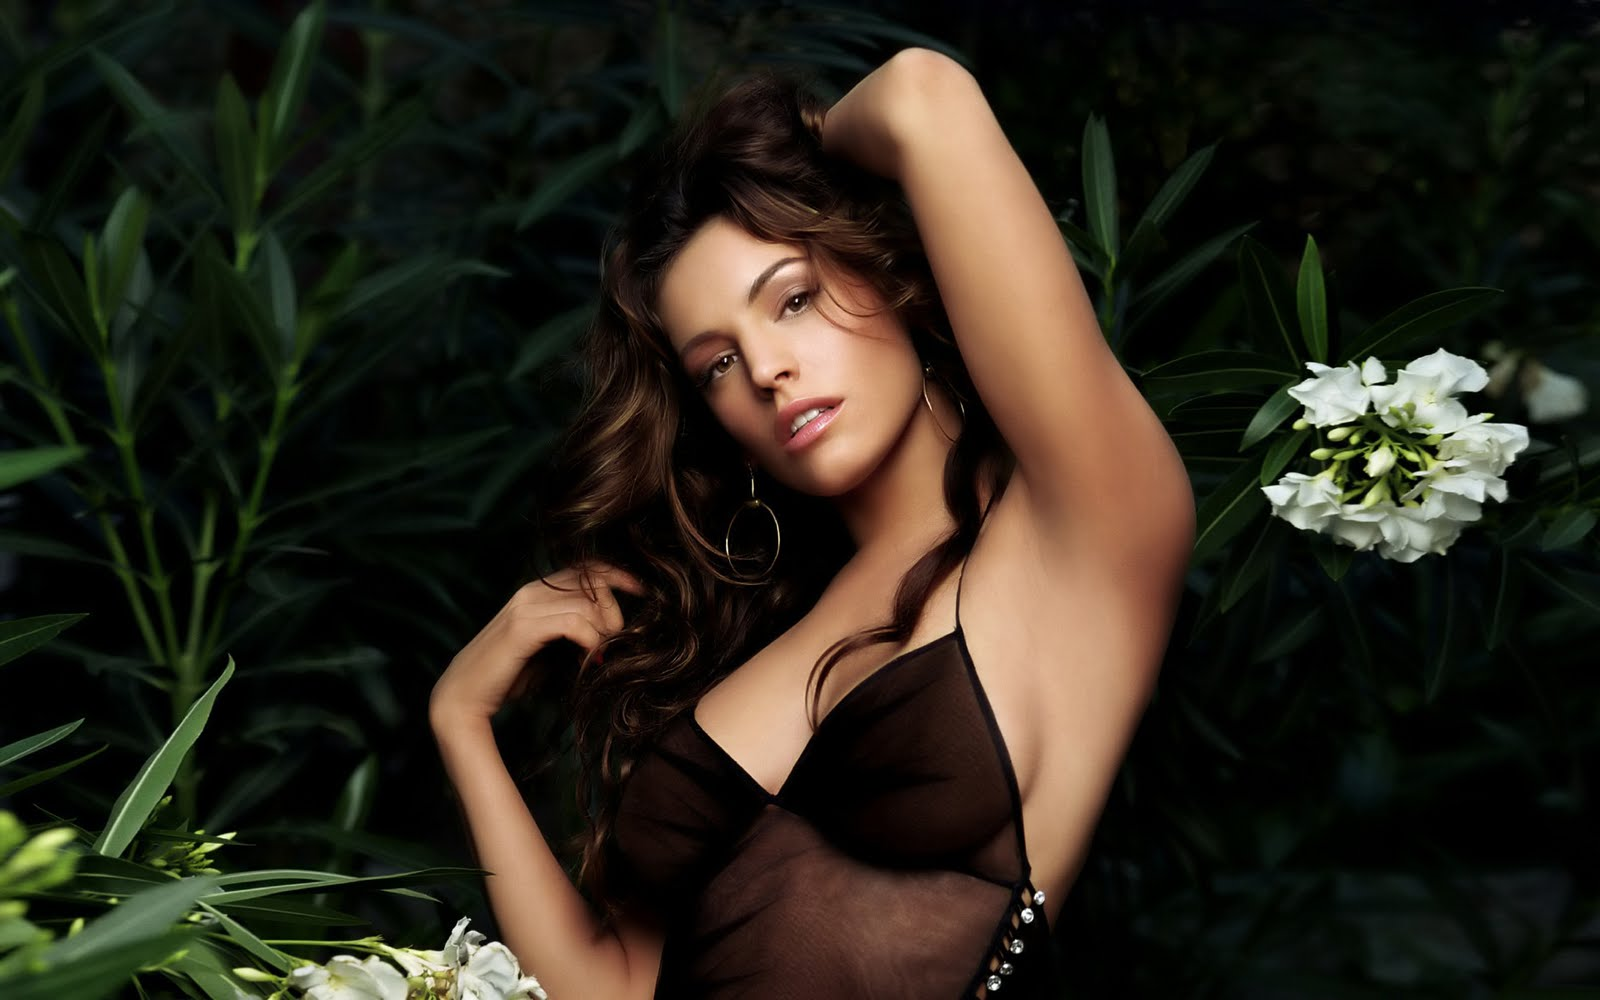 http://4.bp.blogspot.com/_IwRqx_H611g/TNy77Xj41hI/AAAAAAAABOc/C-T55T7aHXE/s1600/kelly_brook_2_hd_widescreen_wallpapers_1920x1200.jpeg